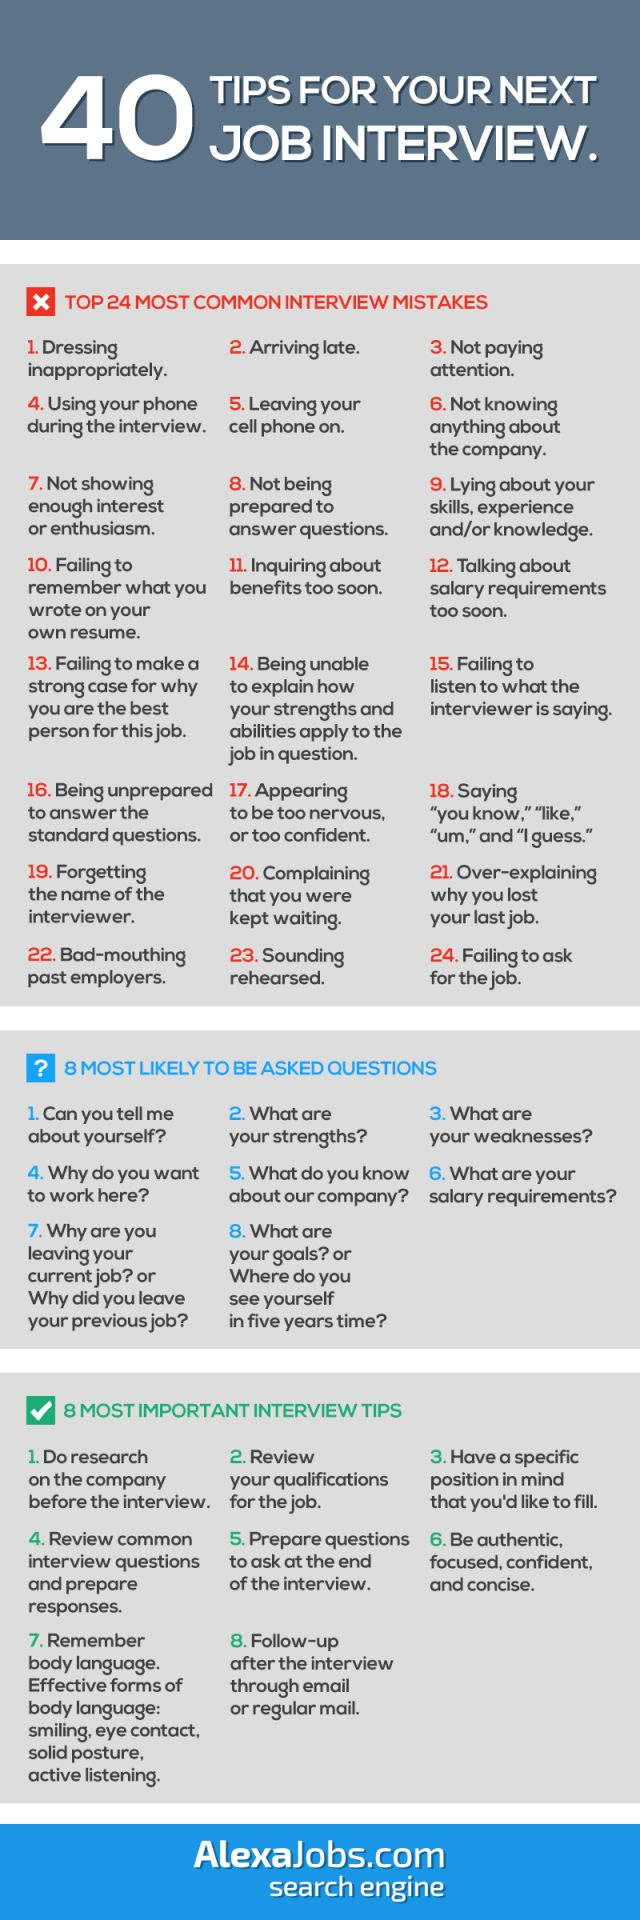 40 Tips For Your Next Job Interview. #Jobsearchtips